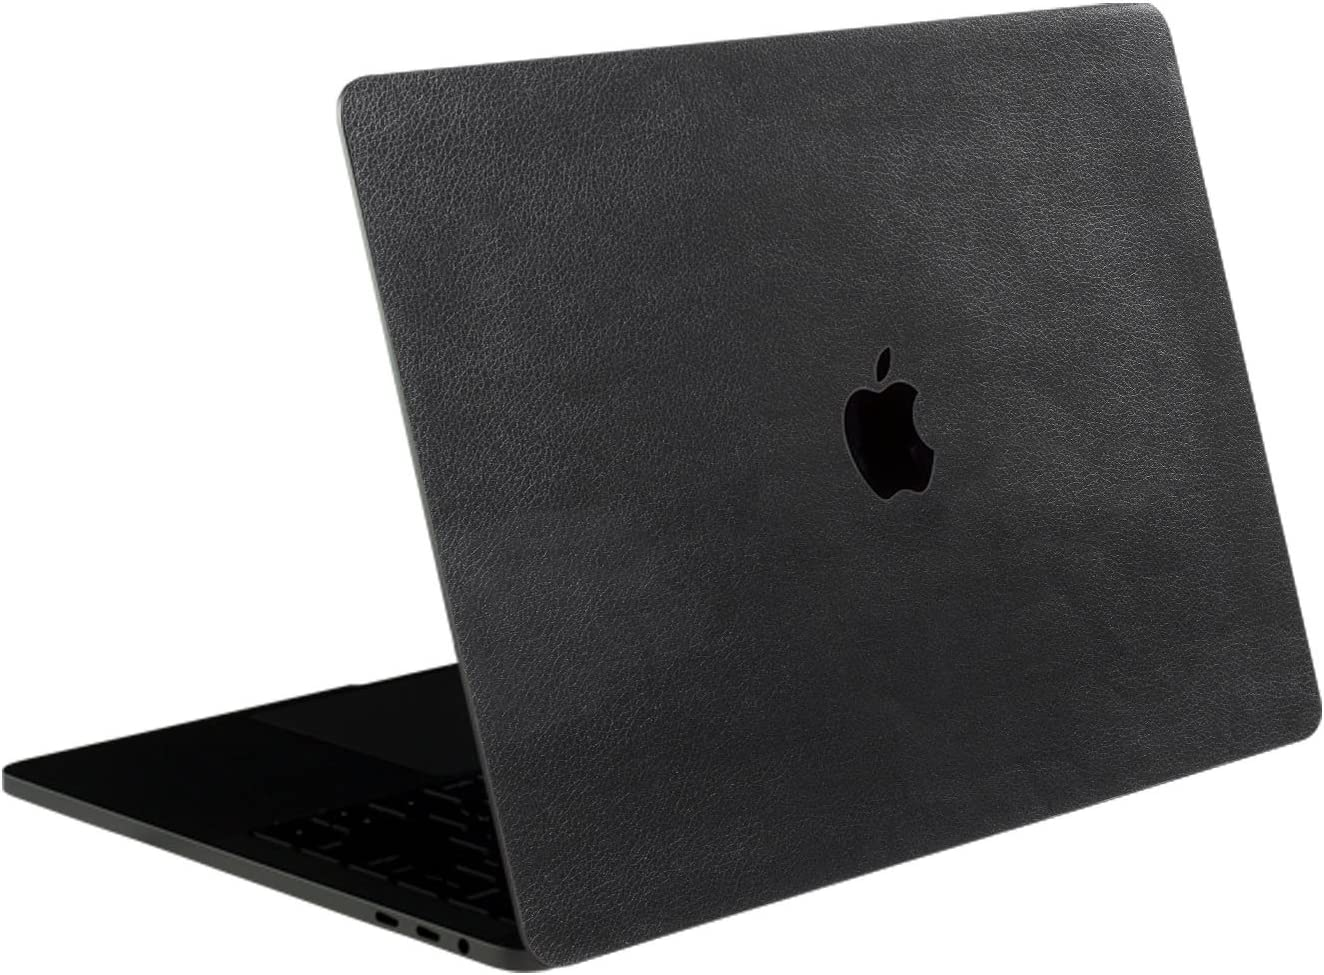 SOJITEK Black Leather Texture 4-in-1, Full-Size 360° Protector Skin Decals Sticker MacBook Pro 13 Inch (2016 2017 2018 2019 Model, with & w/o Touch Bar & ID) A1706 A1708 A1989 Black Keyboard Cover